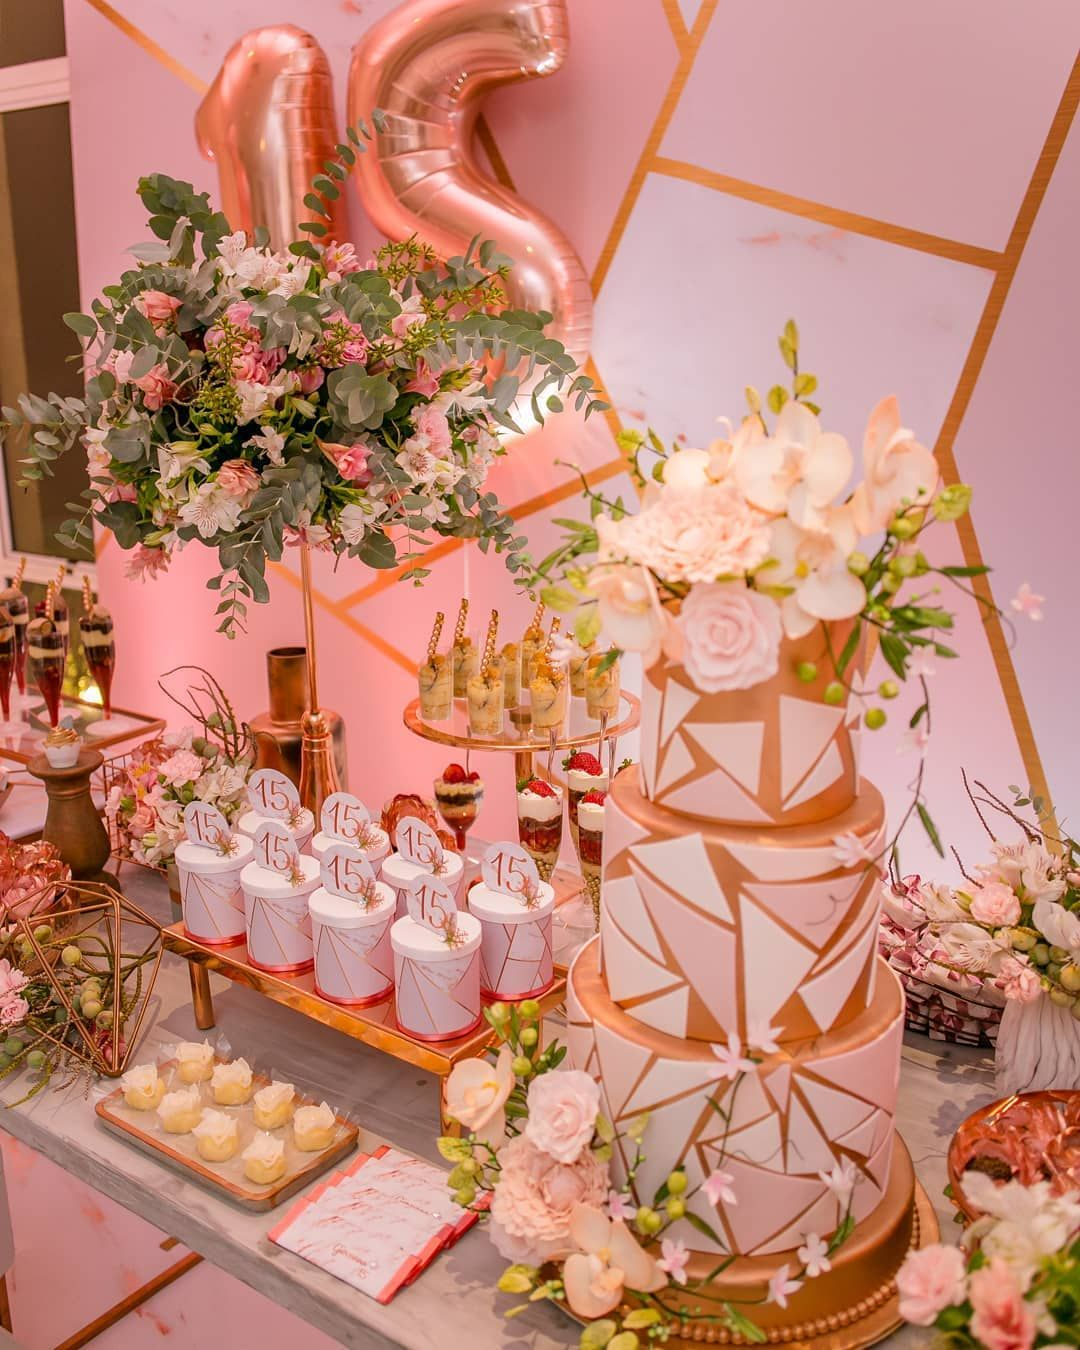 Rose Gold Quinceañera Inspiration For Your Quince | Mi Padrino -   12 sweet 16 desserts Table ideas